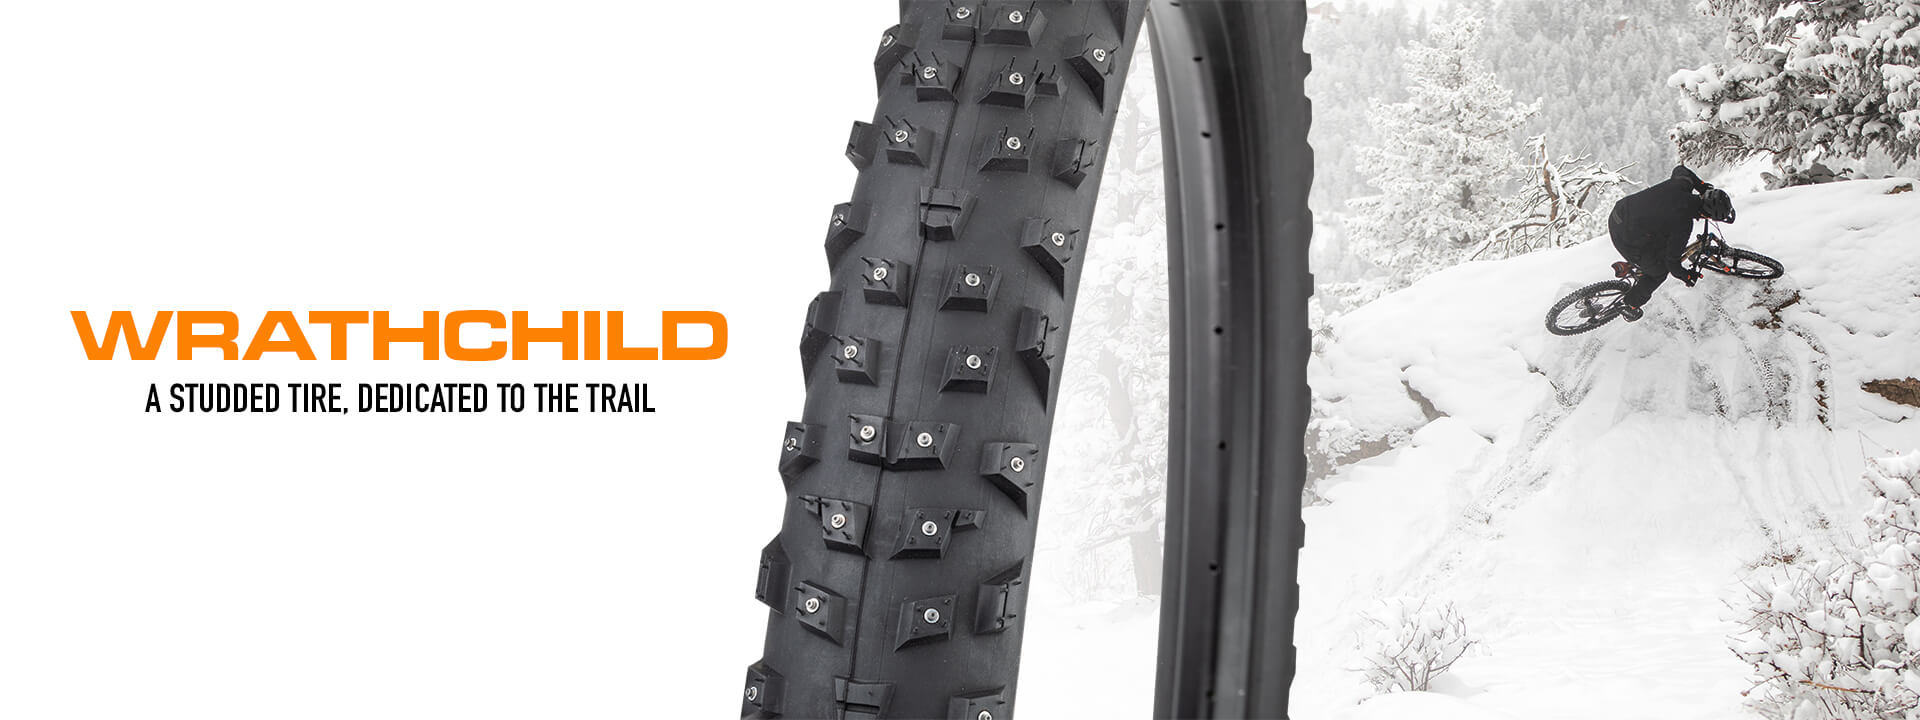 Wrathchild - A studded tire, dedicated to the trail - Closeup of tire tread and studs in front of a rider on a snowy hill